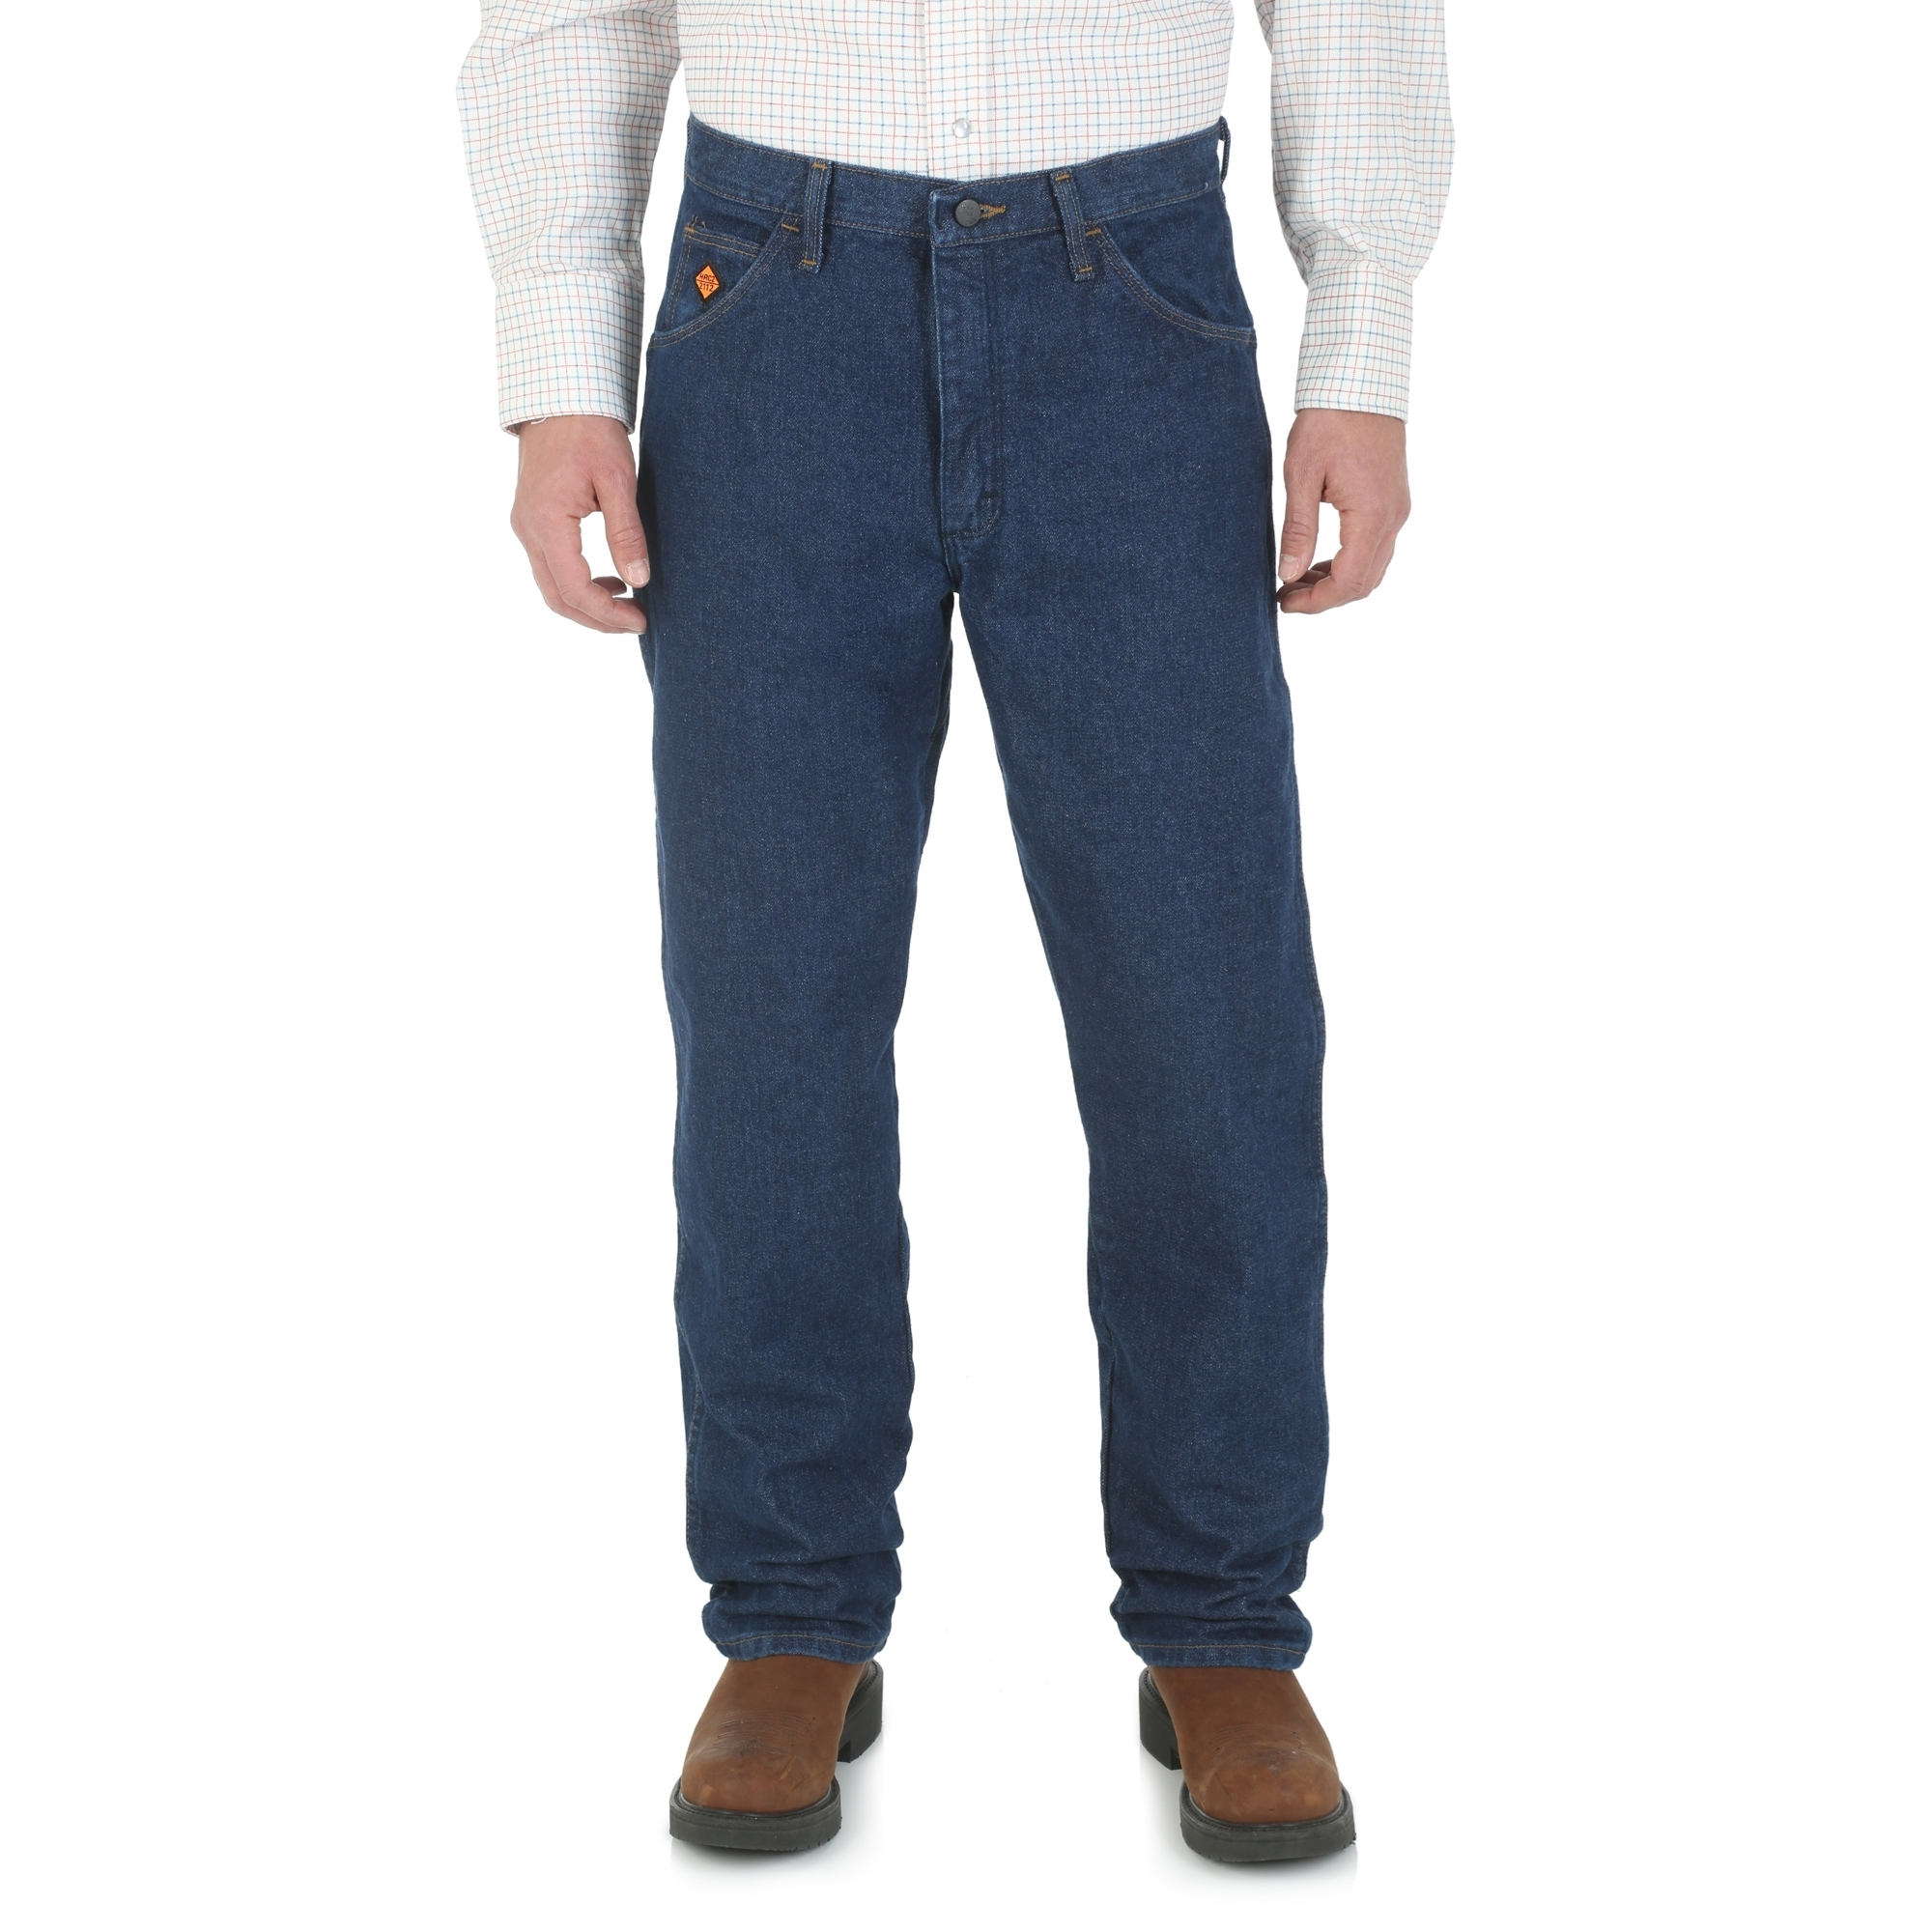 Wrangler FR Jeans Relaxed Fit